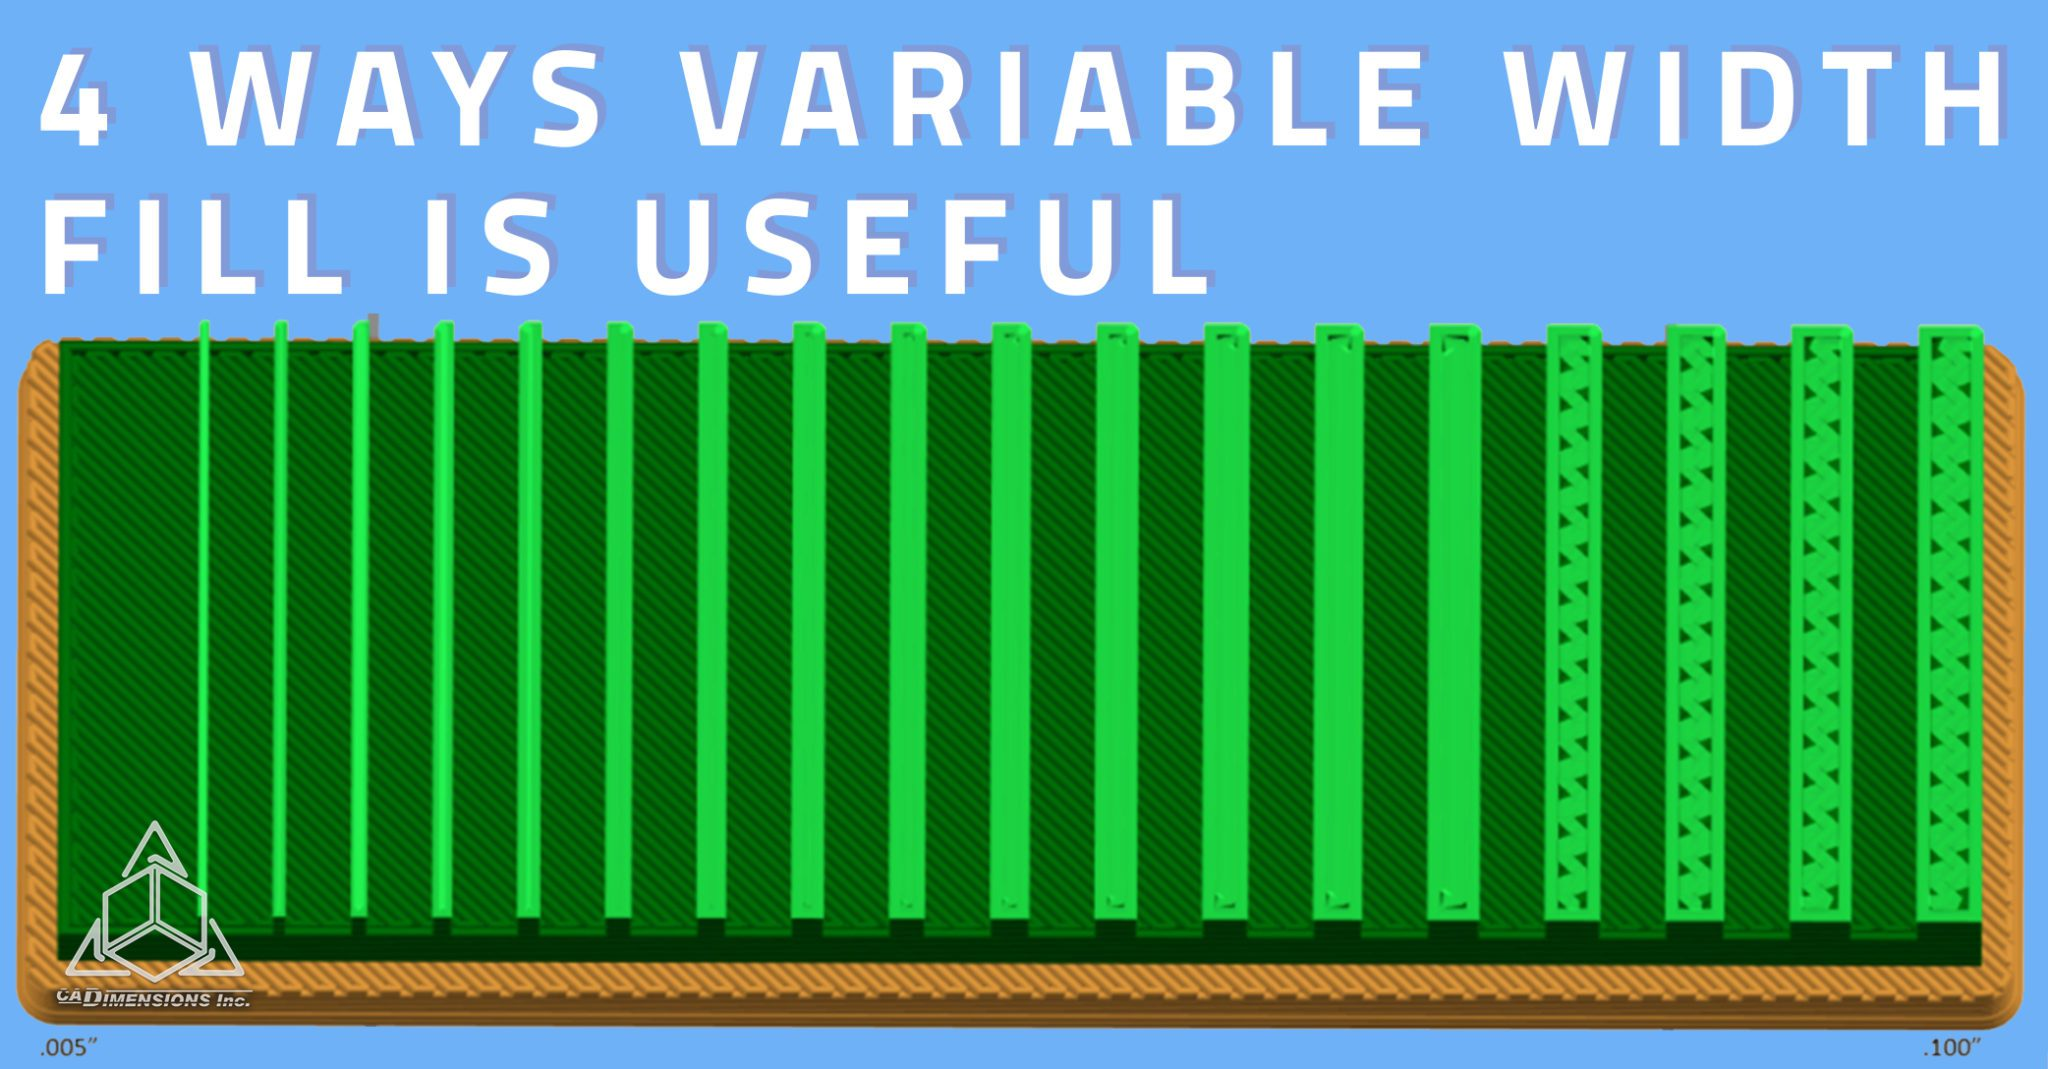 4 Ways Variable Width Fill Is Useful with CADimensions